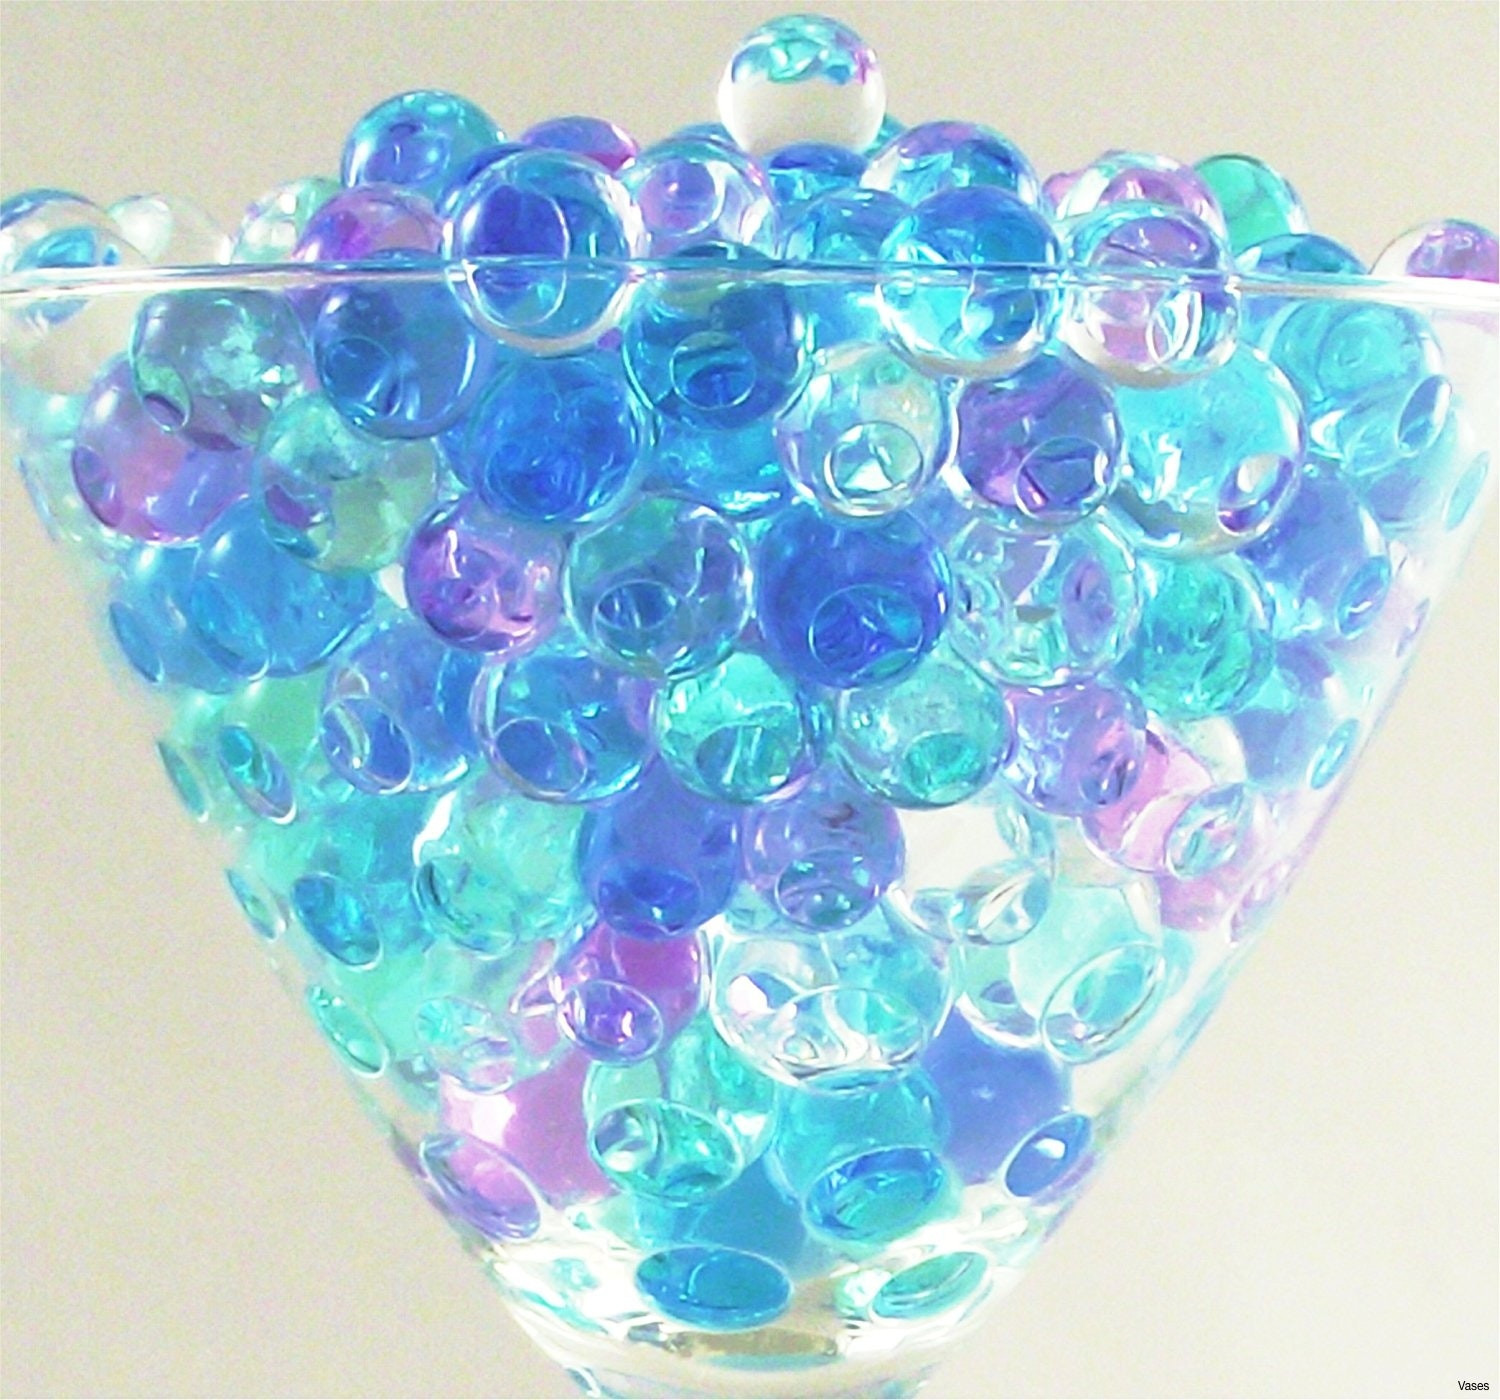 green vase filler of decoration with balls vase filler ideas 5h vases decorative balls 5i throughout decoration with balls jade 20green 202h vases gel balls for 500 water beads aqua crystals of